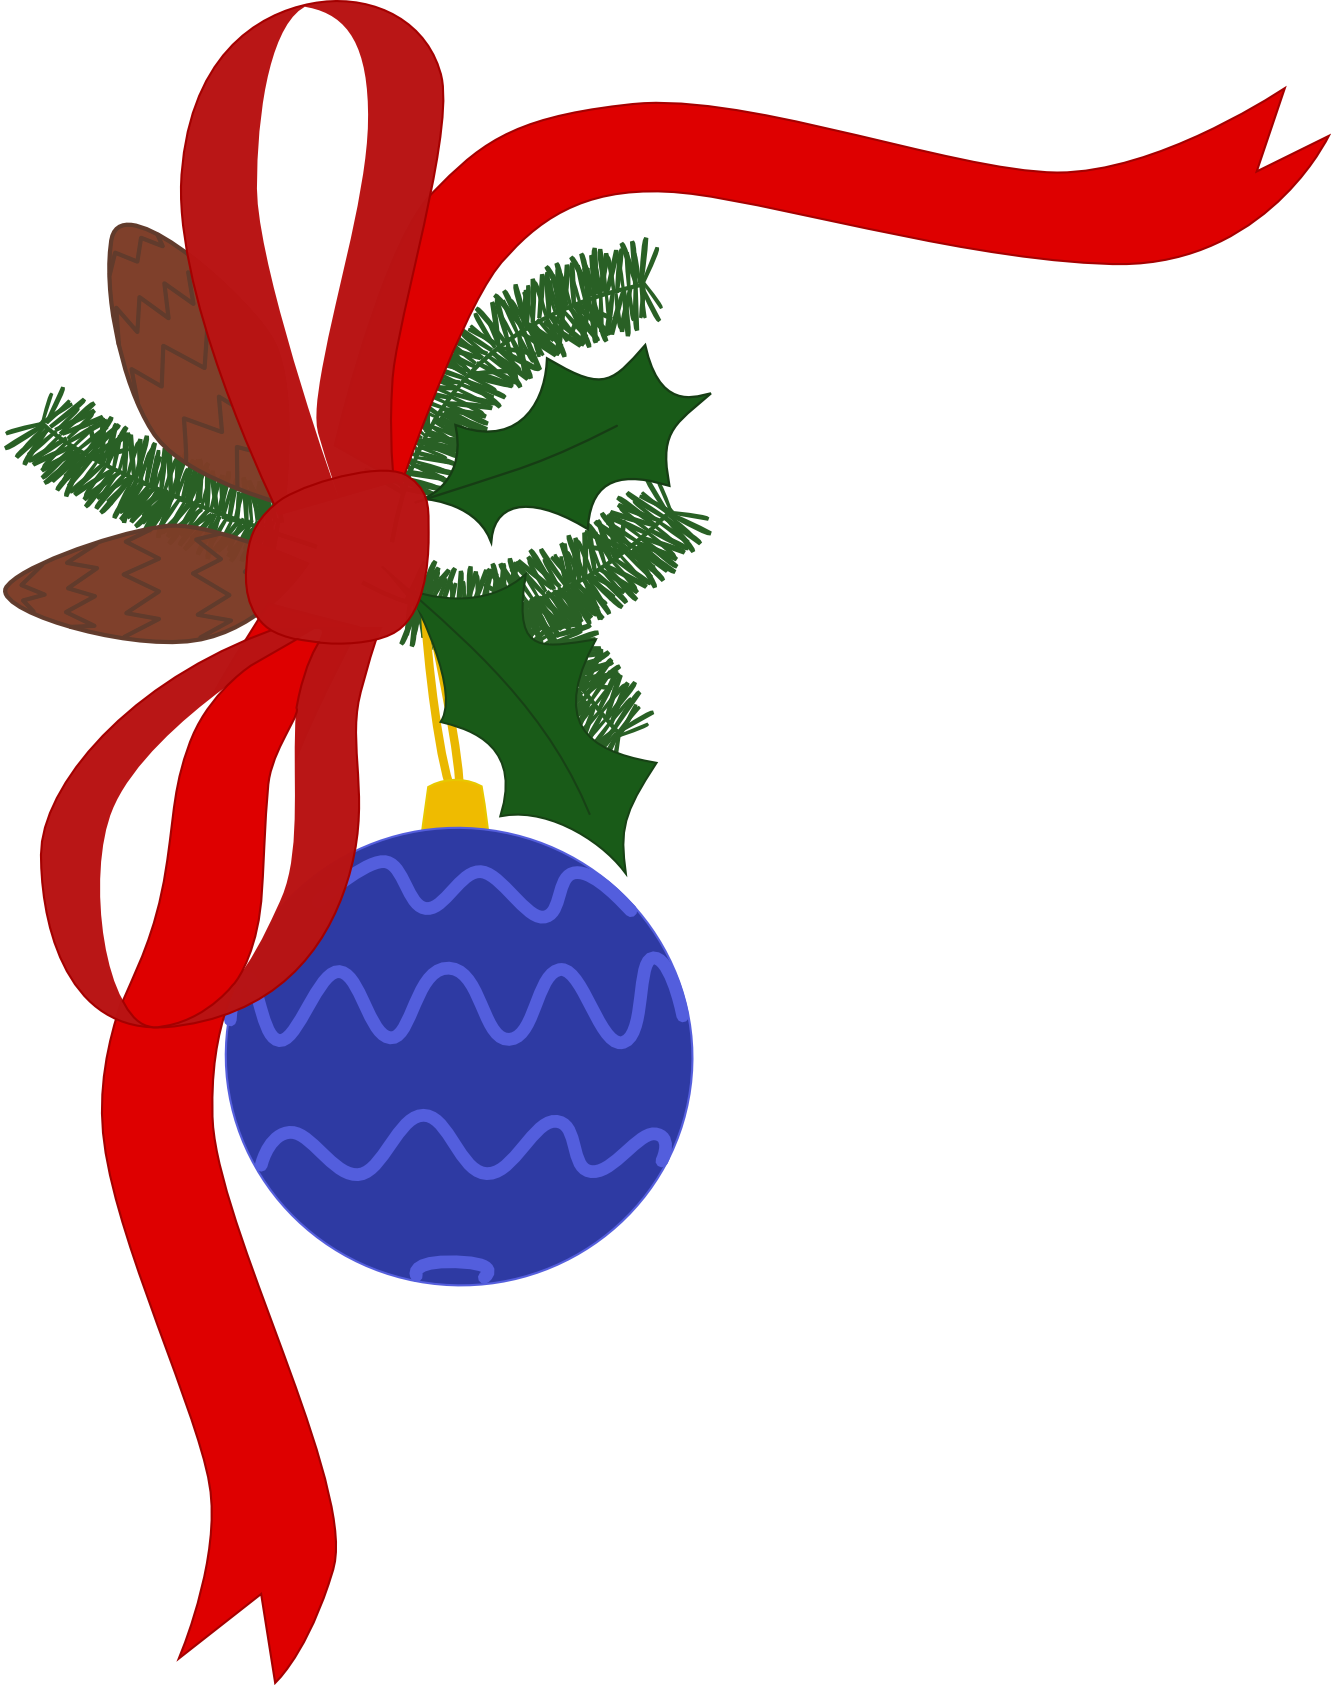 Holidays clipart sign. Free christmas decorations download